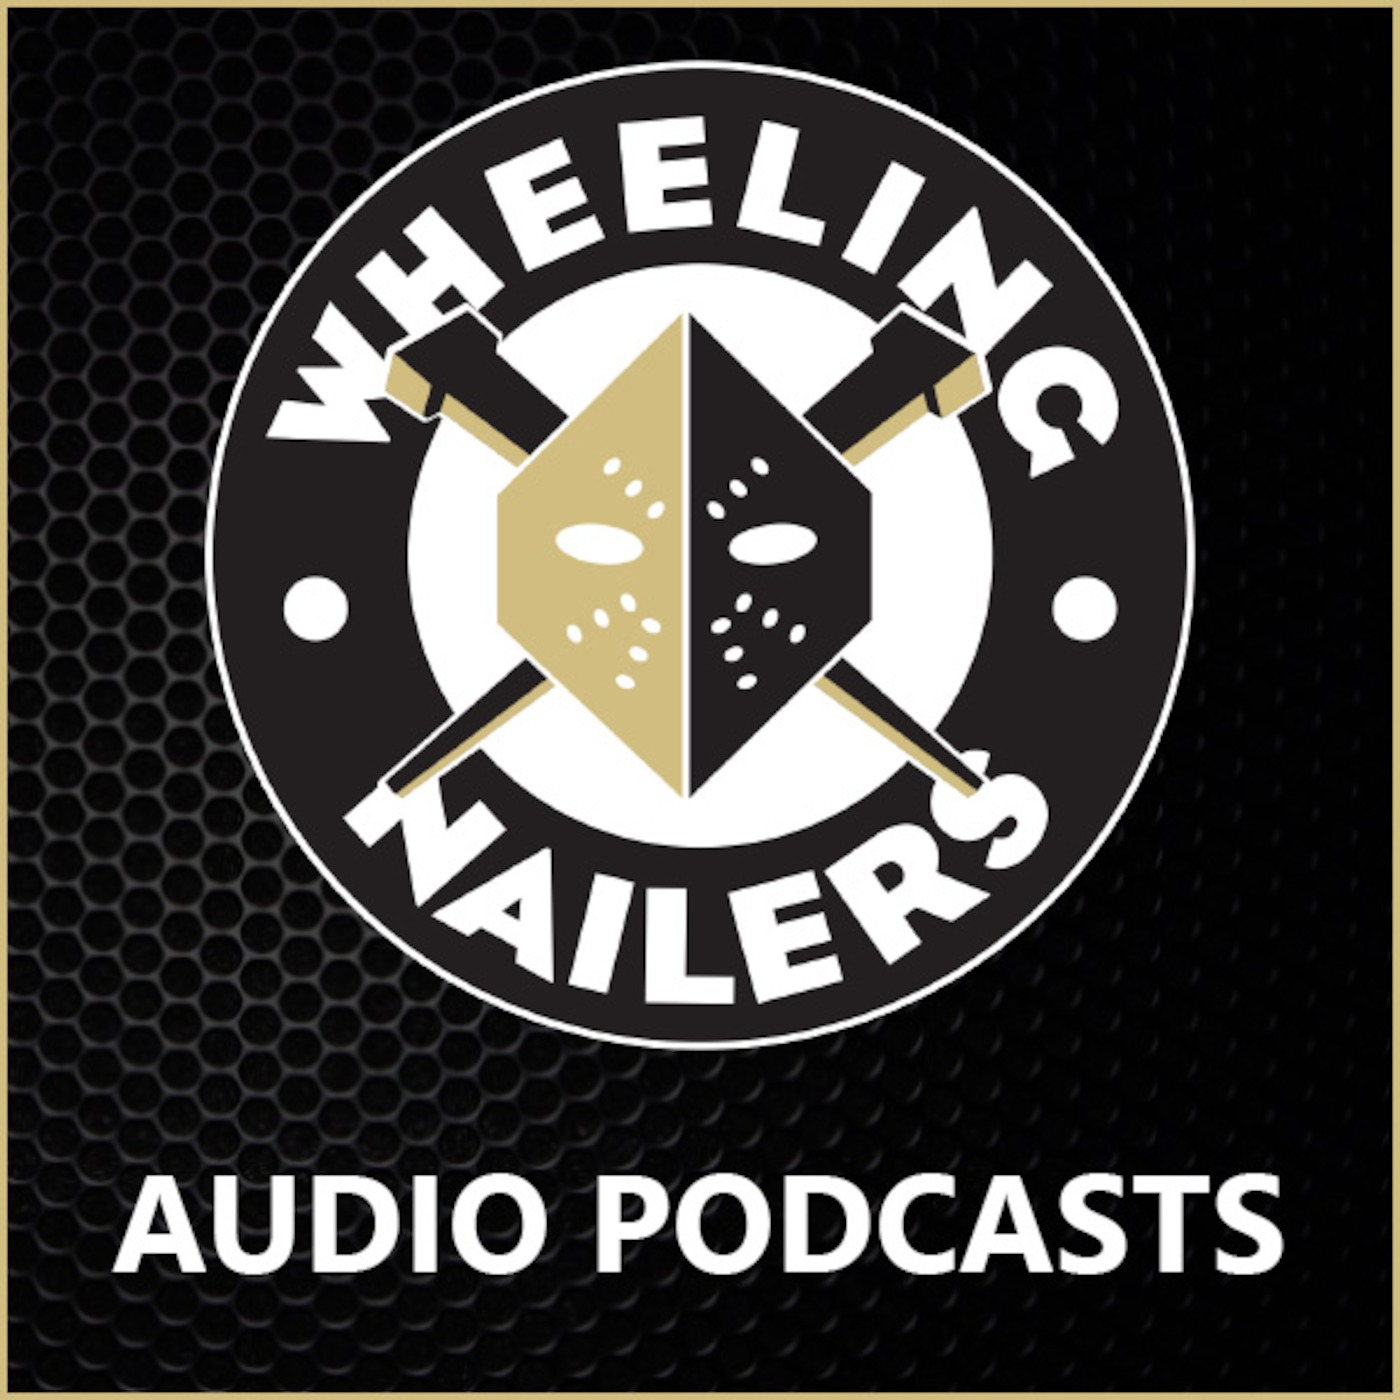 Wheeling Nailers Audio Podcasts